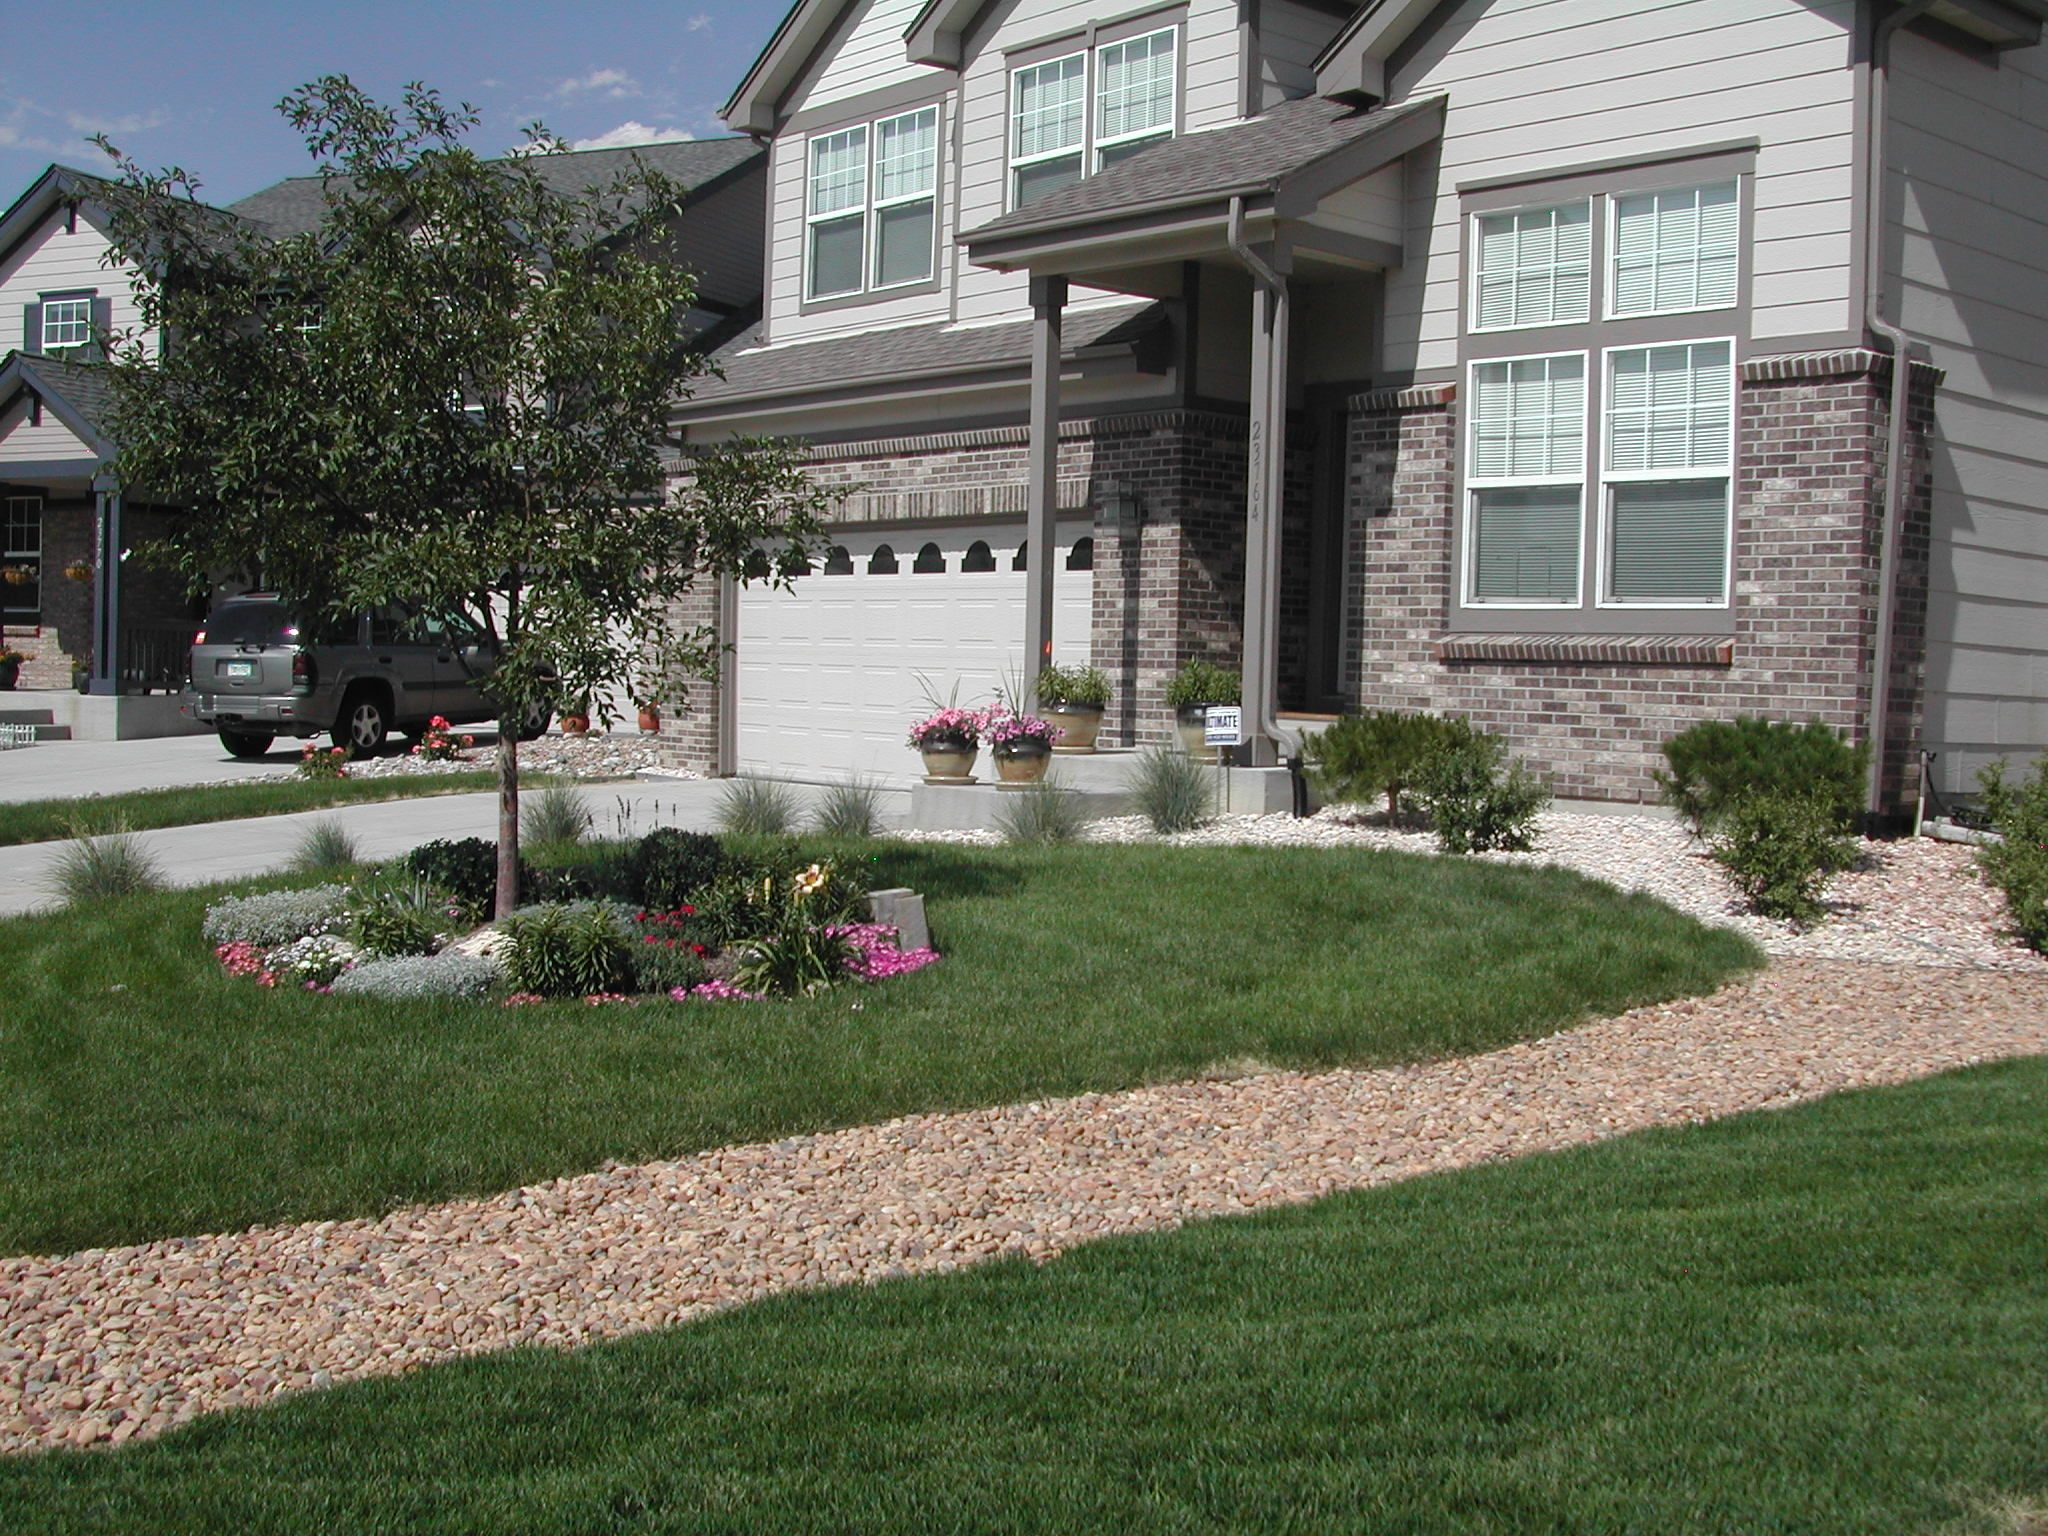 Home Improvement Projects Rock Drainagefront Yard